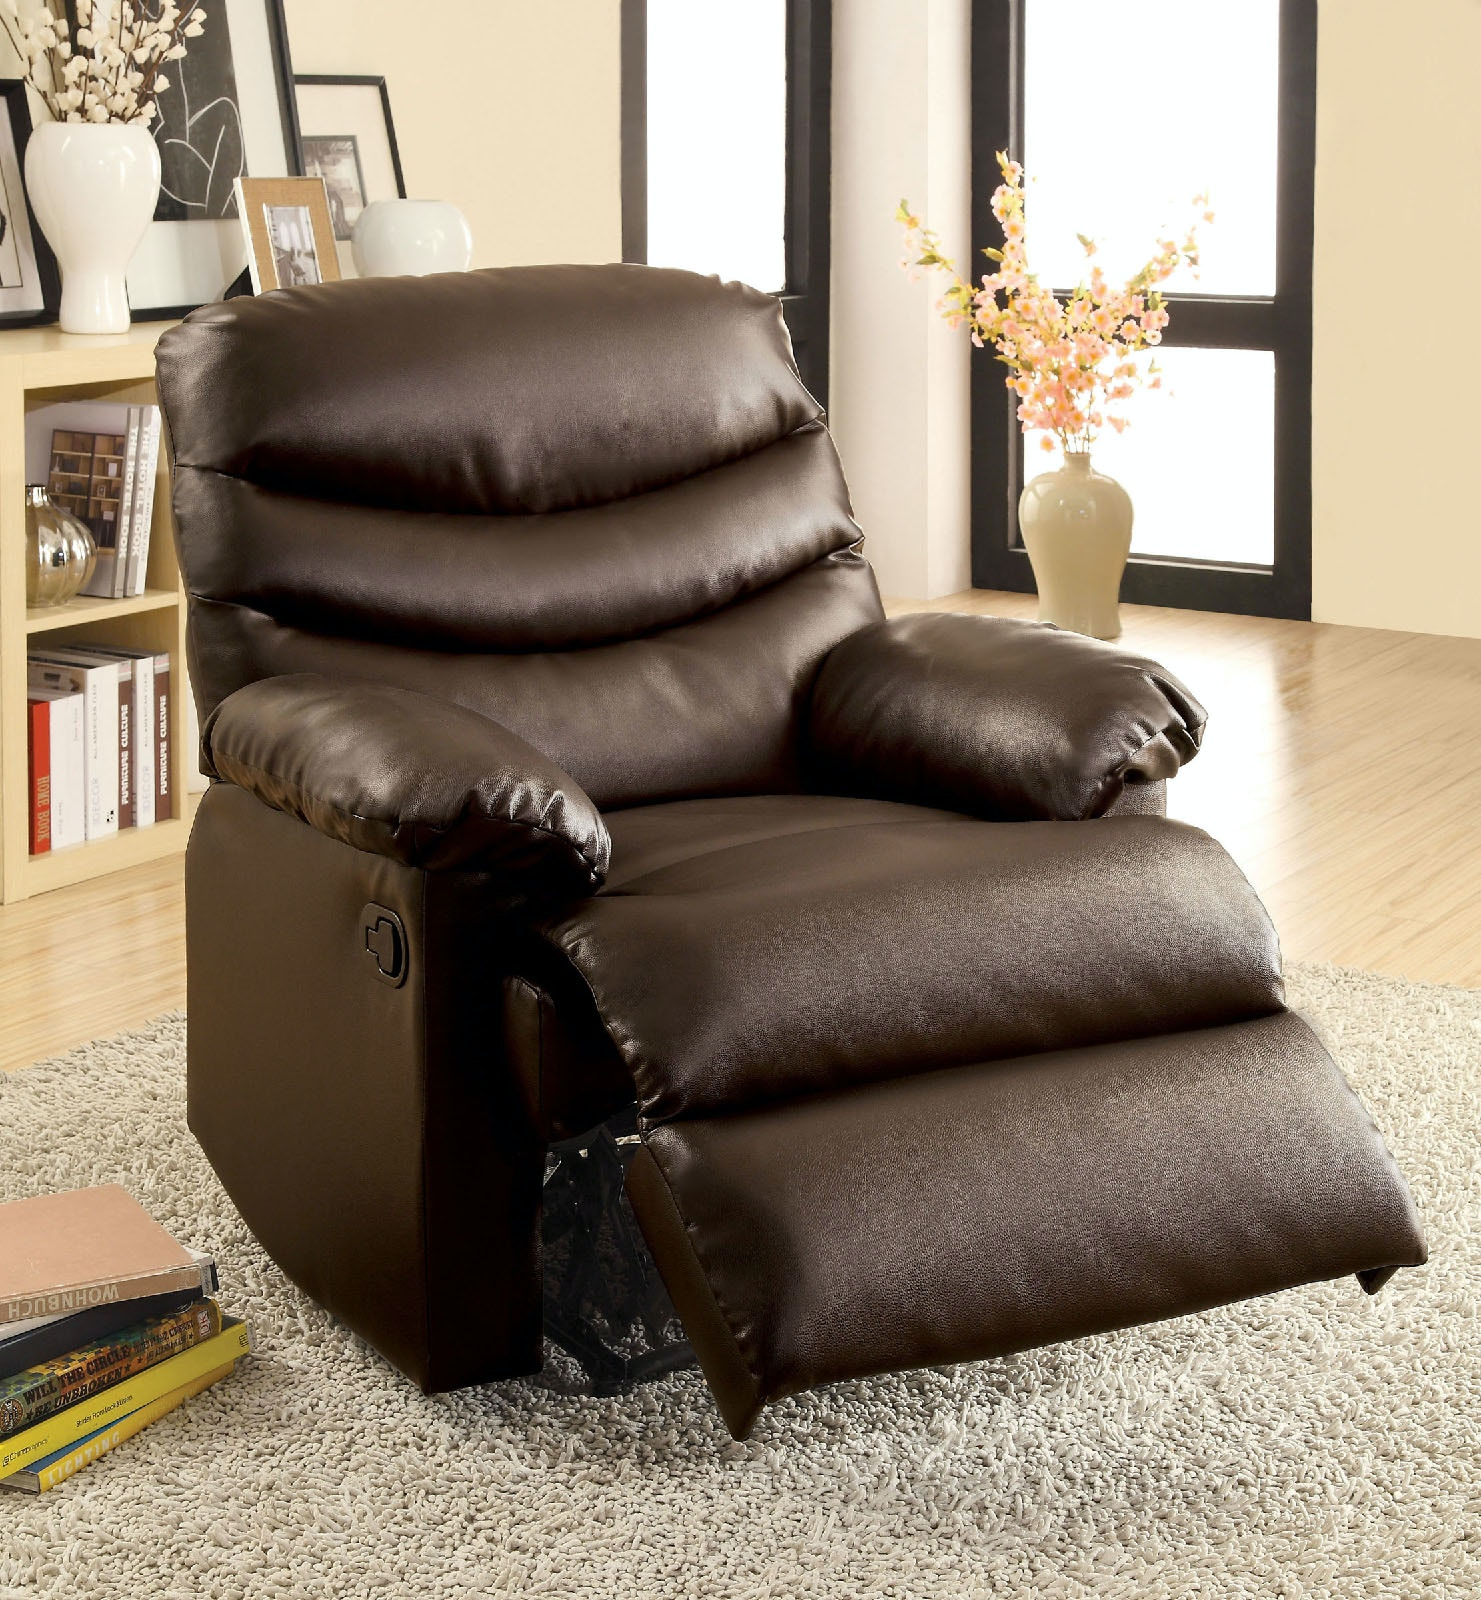 Furniture Of America Living Room Recliner, Brown Microfiber CM RC6927 DK    The Furniture Mall   Duluth, Doraville, Kennesaw And The Chamblee, GA